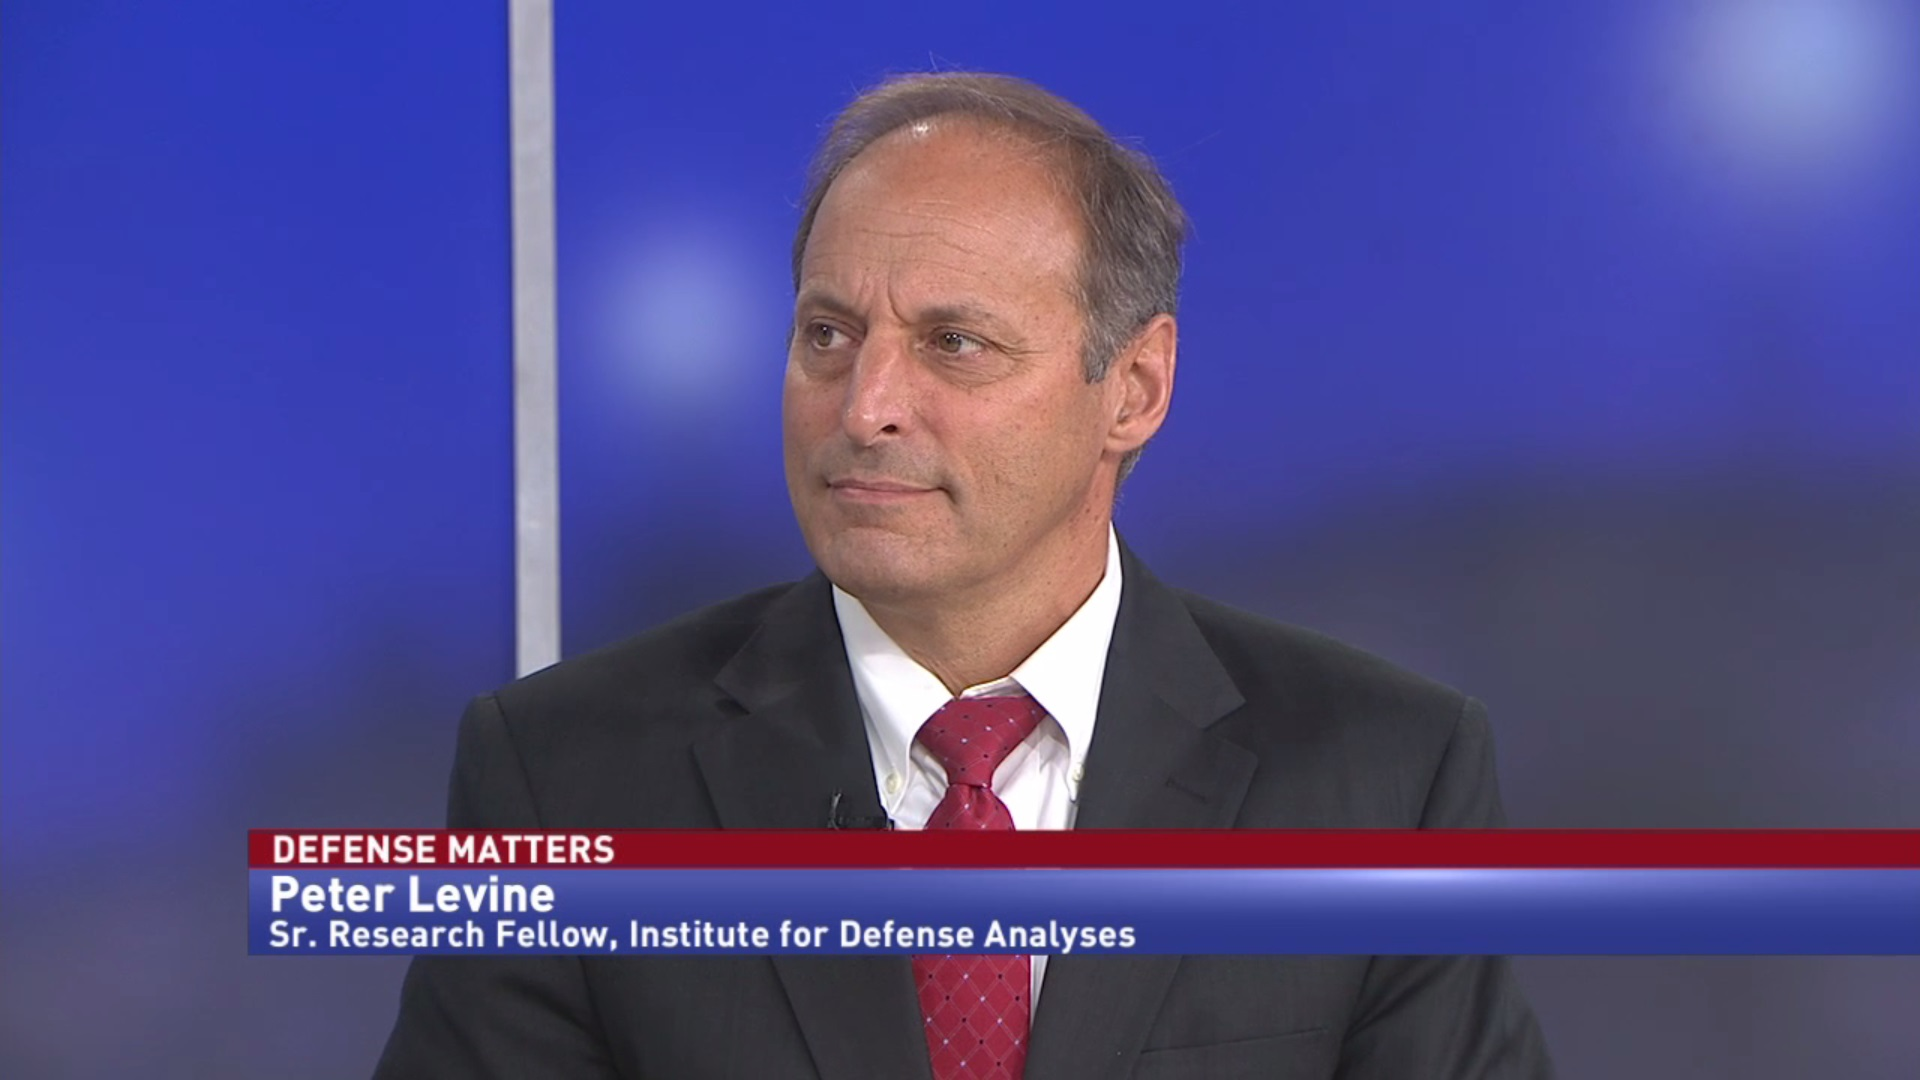 The future of DoD financial management & audits